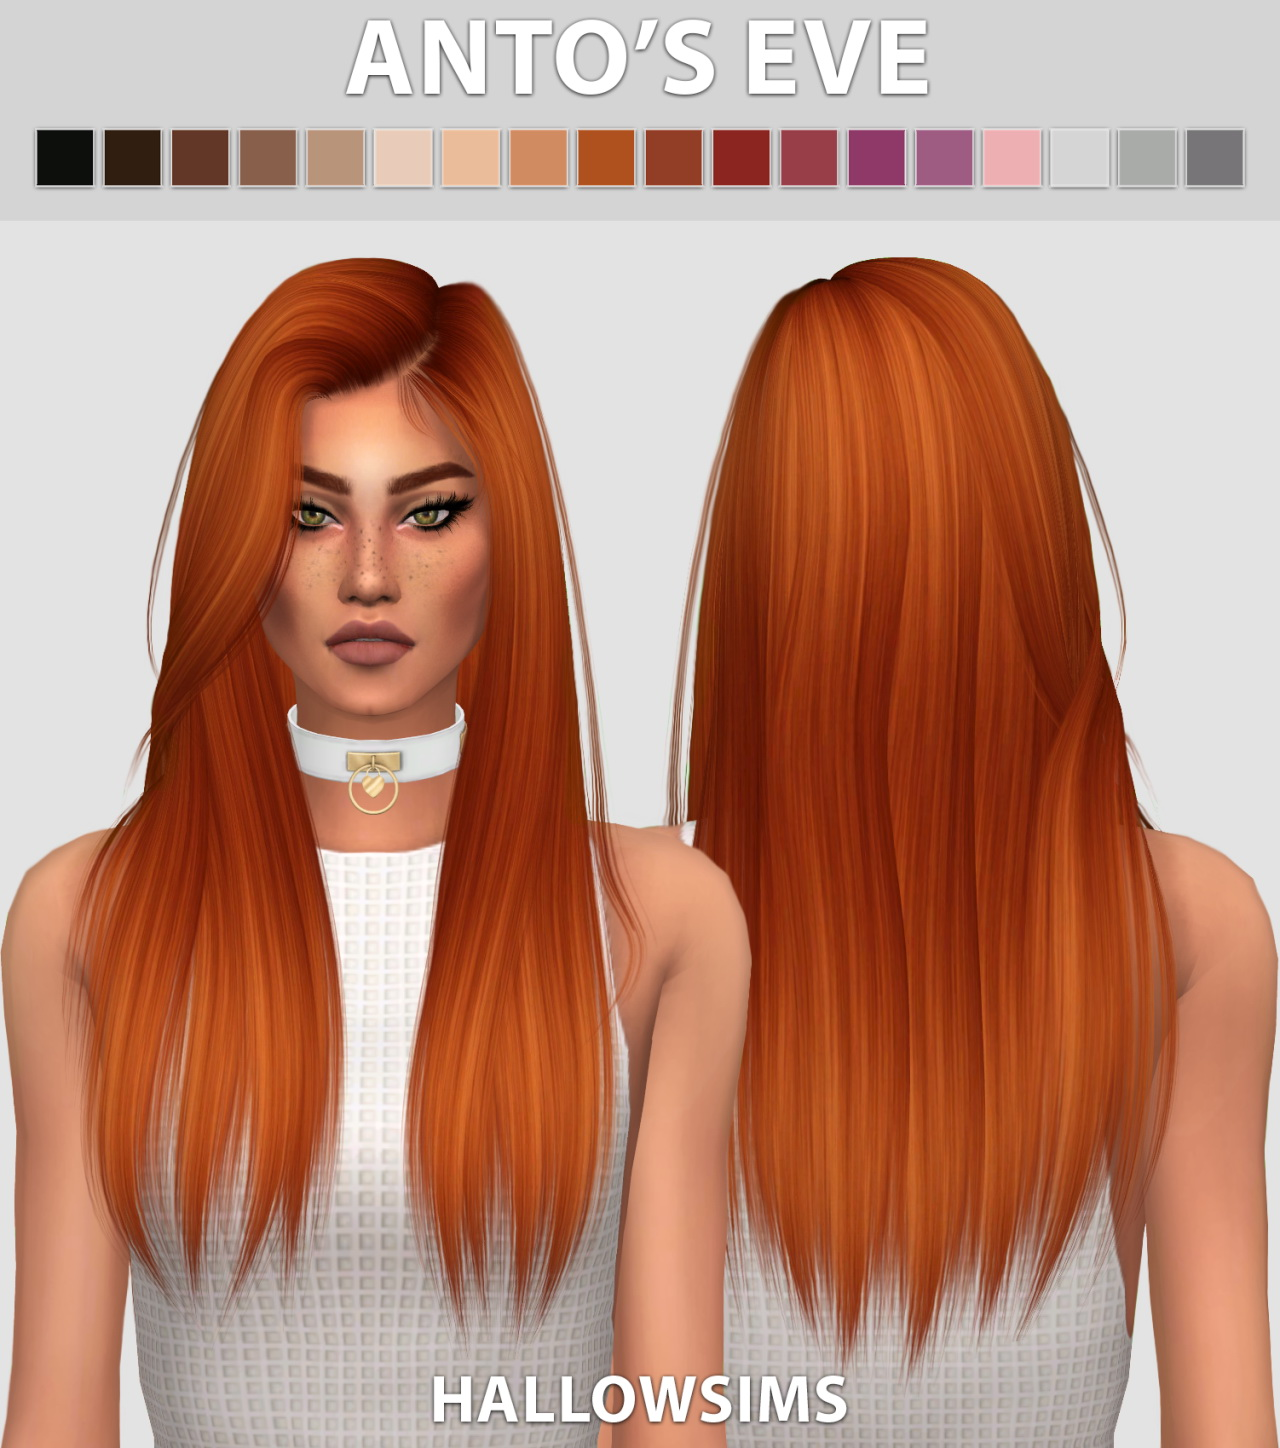 Sims 4 Hairstyles: Hallow Sims: Anto`s Eve Hair Retextured